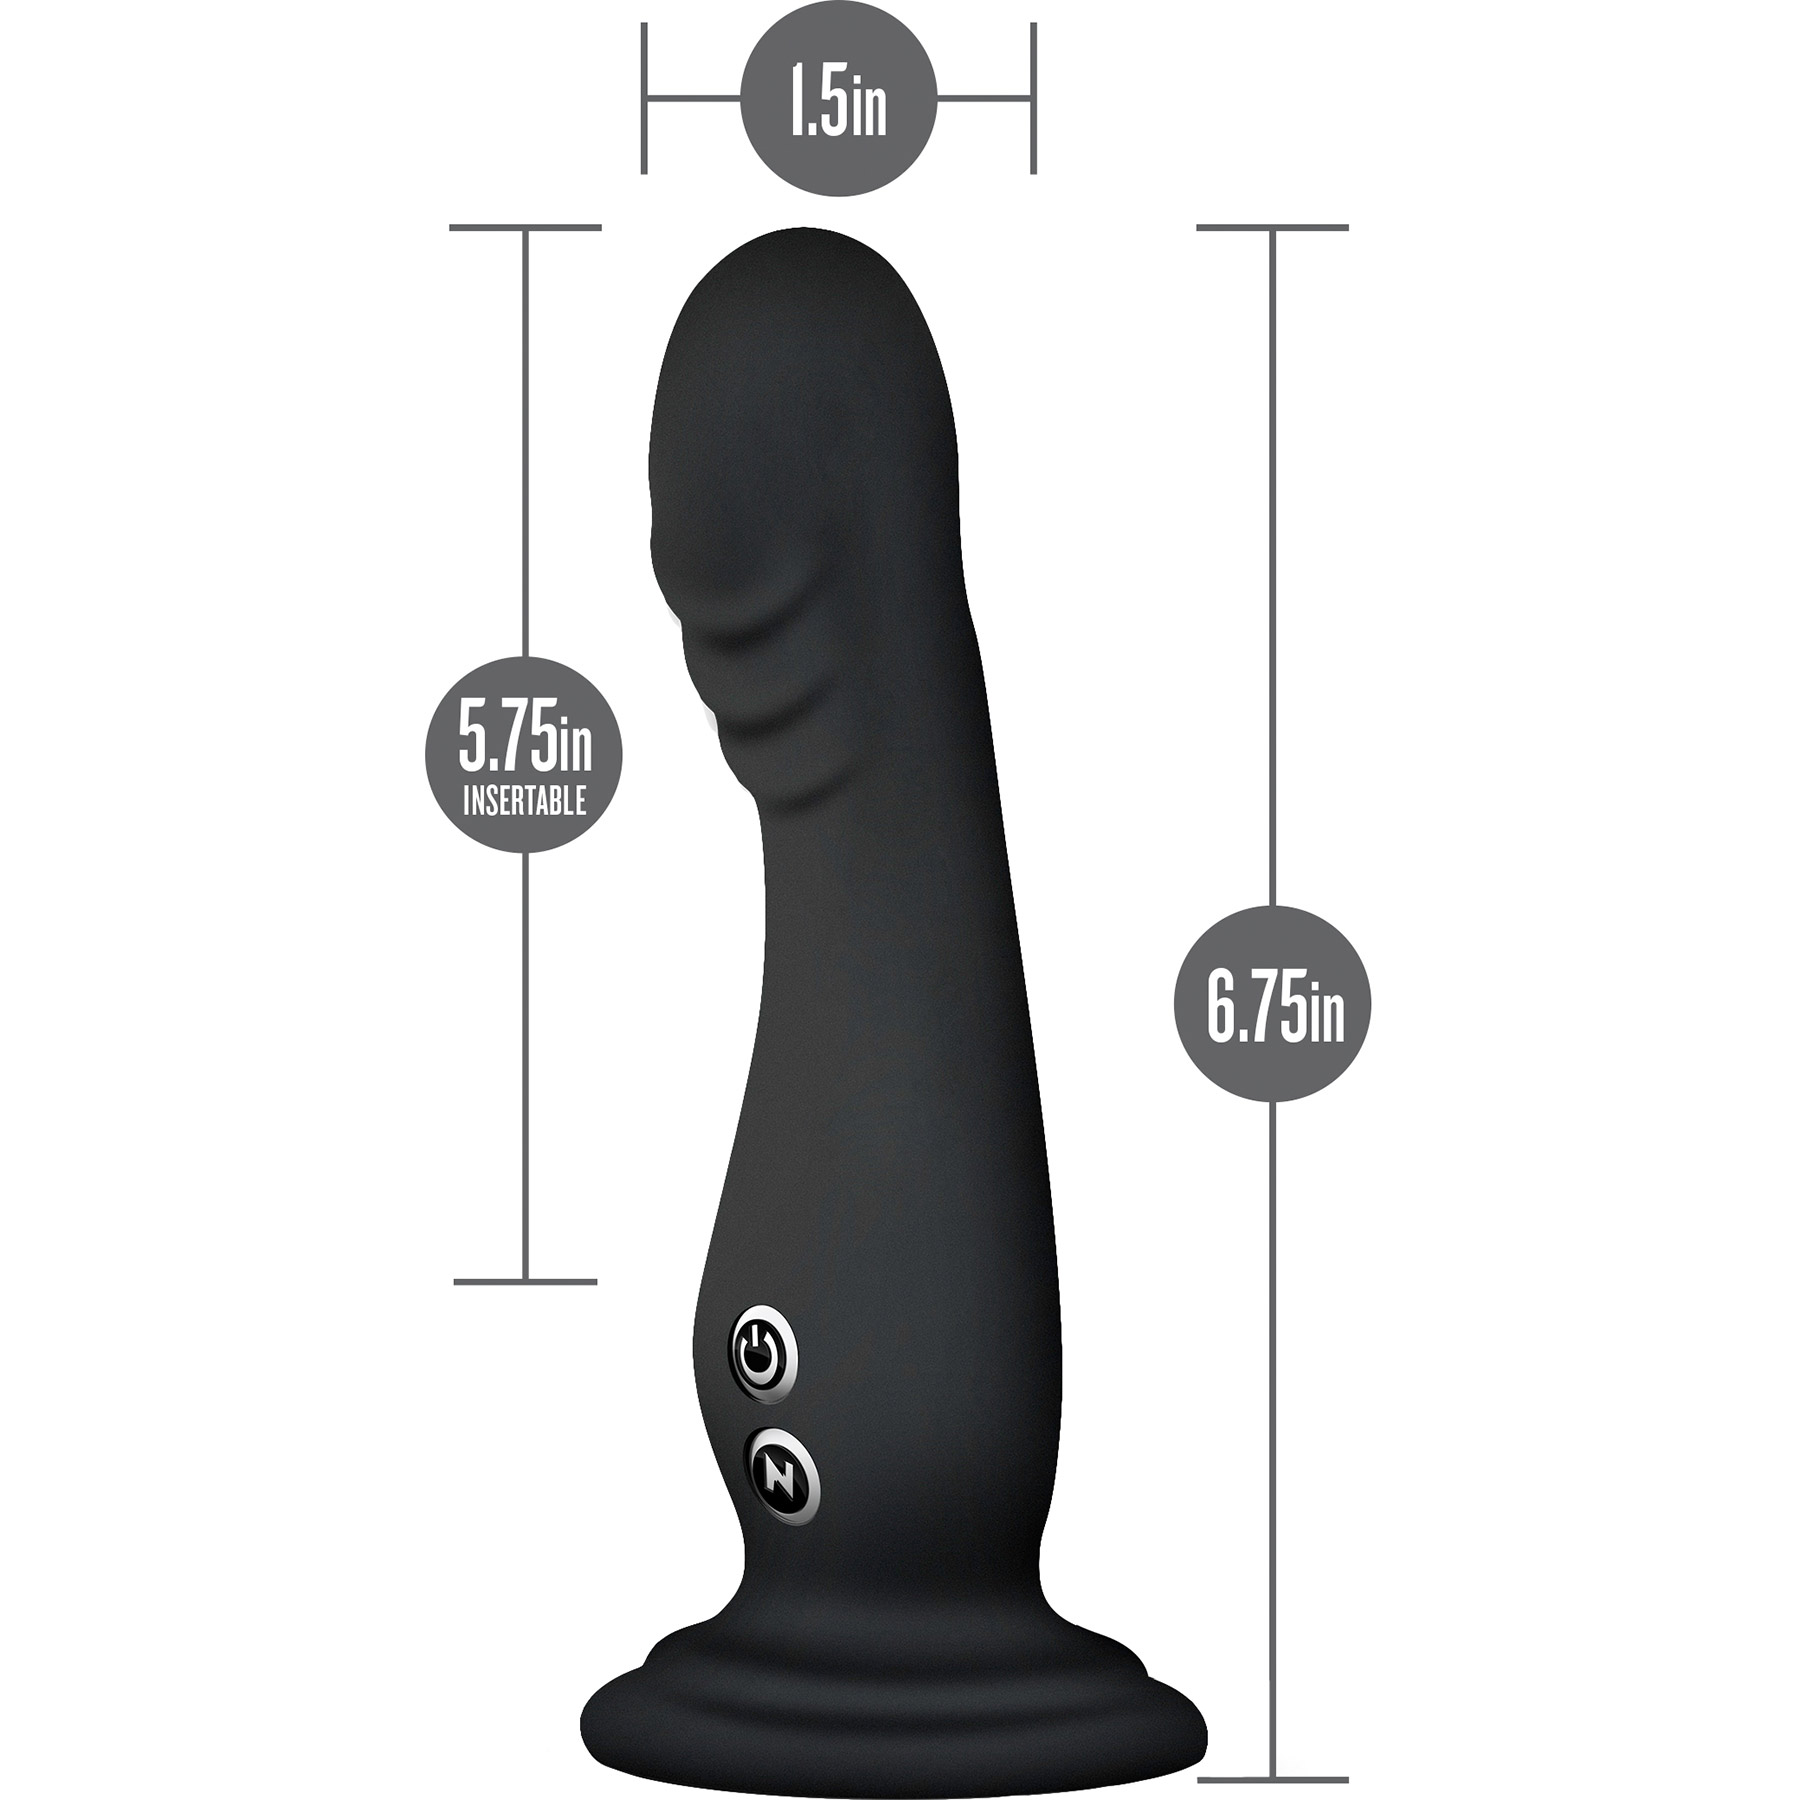 Impressions N1 Silicone Suction Cup G-Spot Vibrator - Measurements